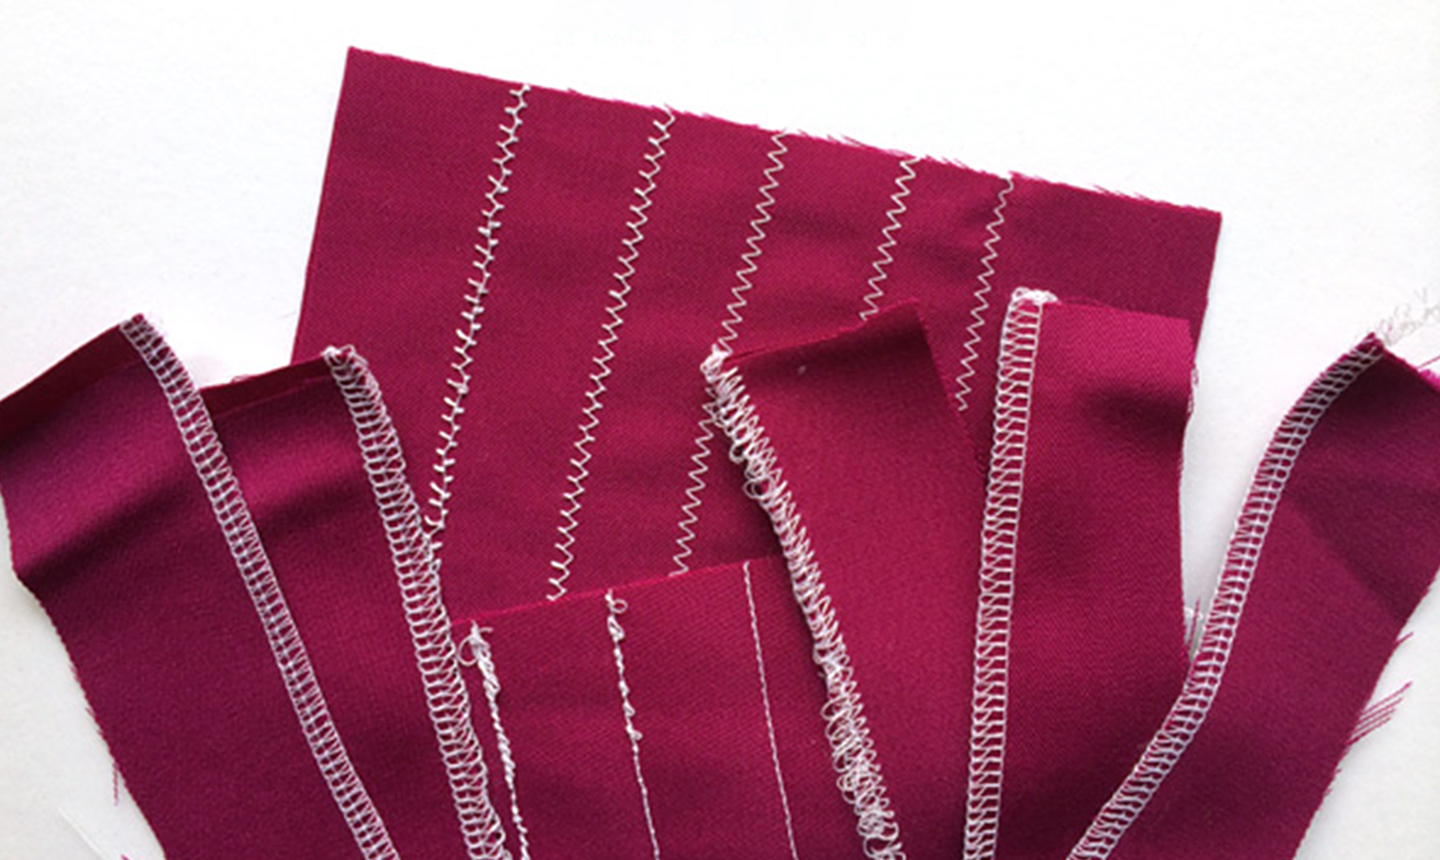 Maroon cloth with different stitches